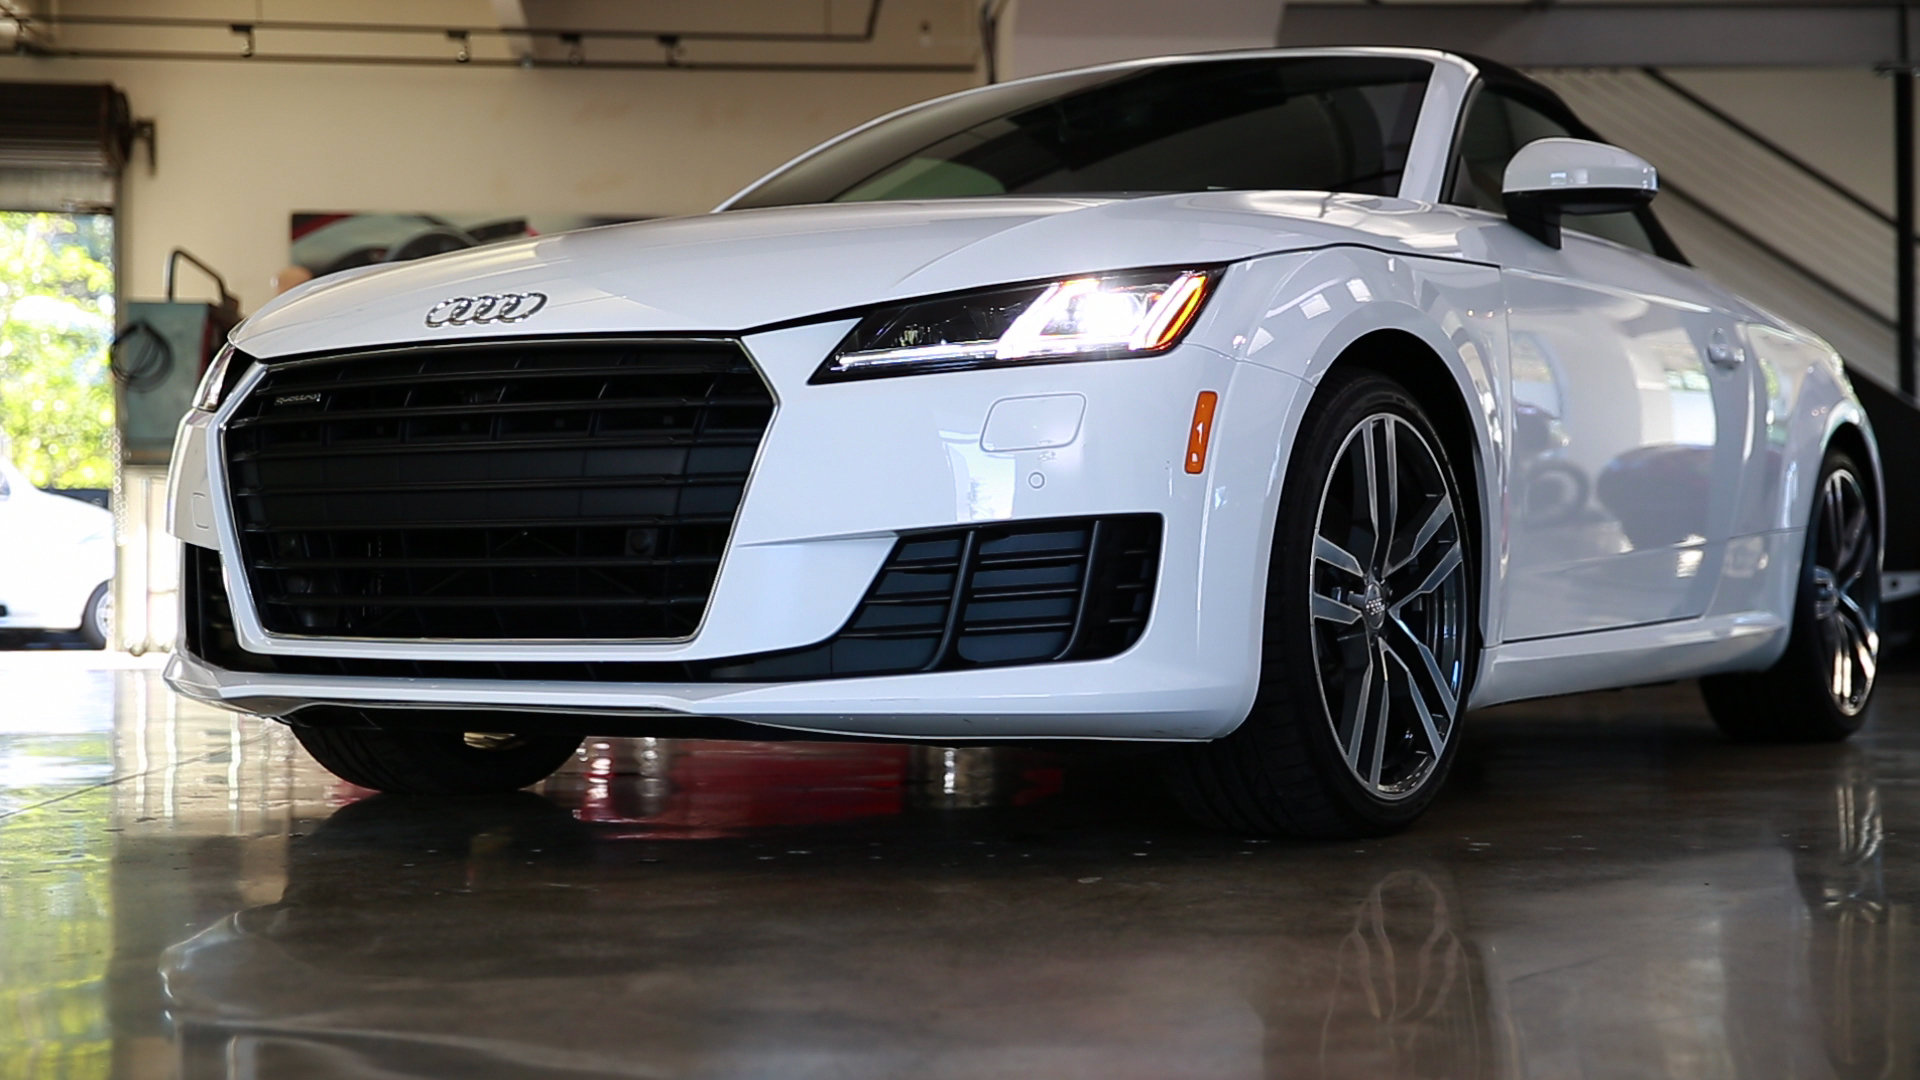 Video: On the road: 2016 Audi TT Roadster